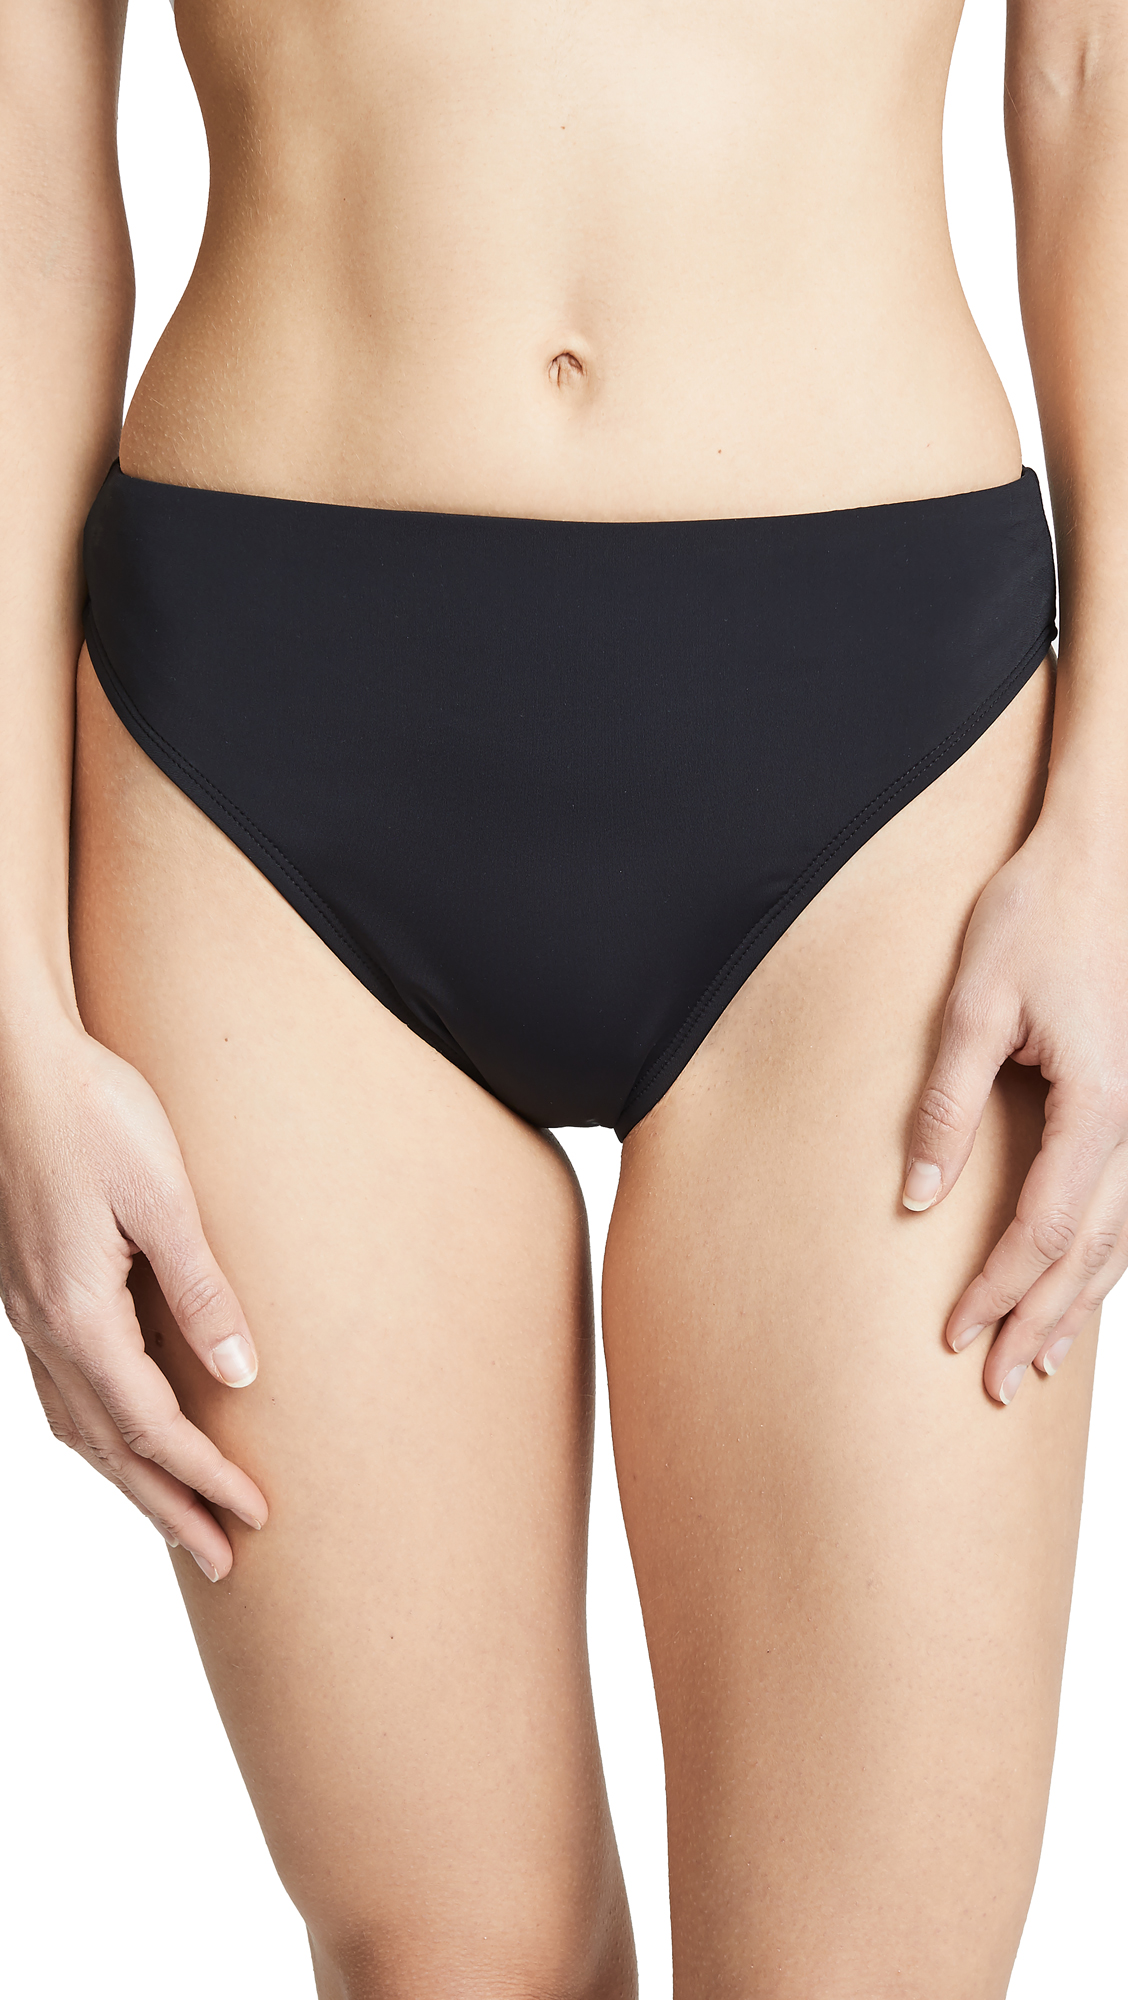 BETH RICHARDS Heather High Waist Bikini Bottoms in Black